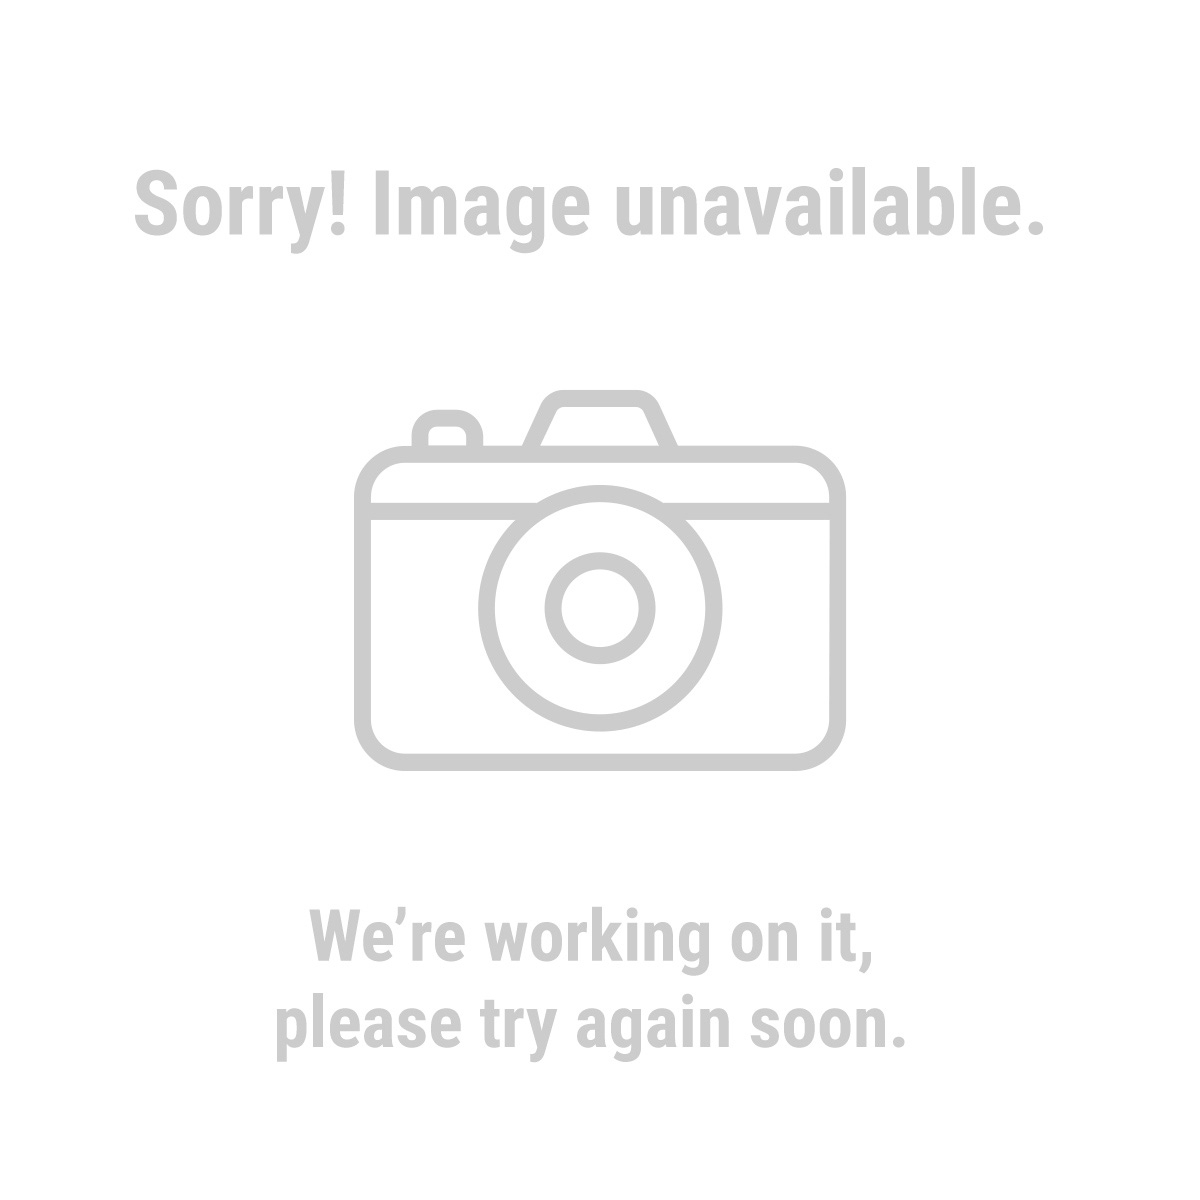 Storehouse 94695 Battery Organizer